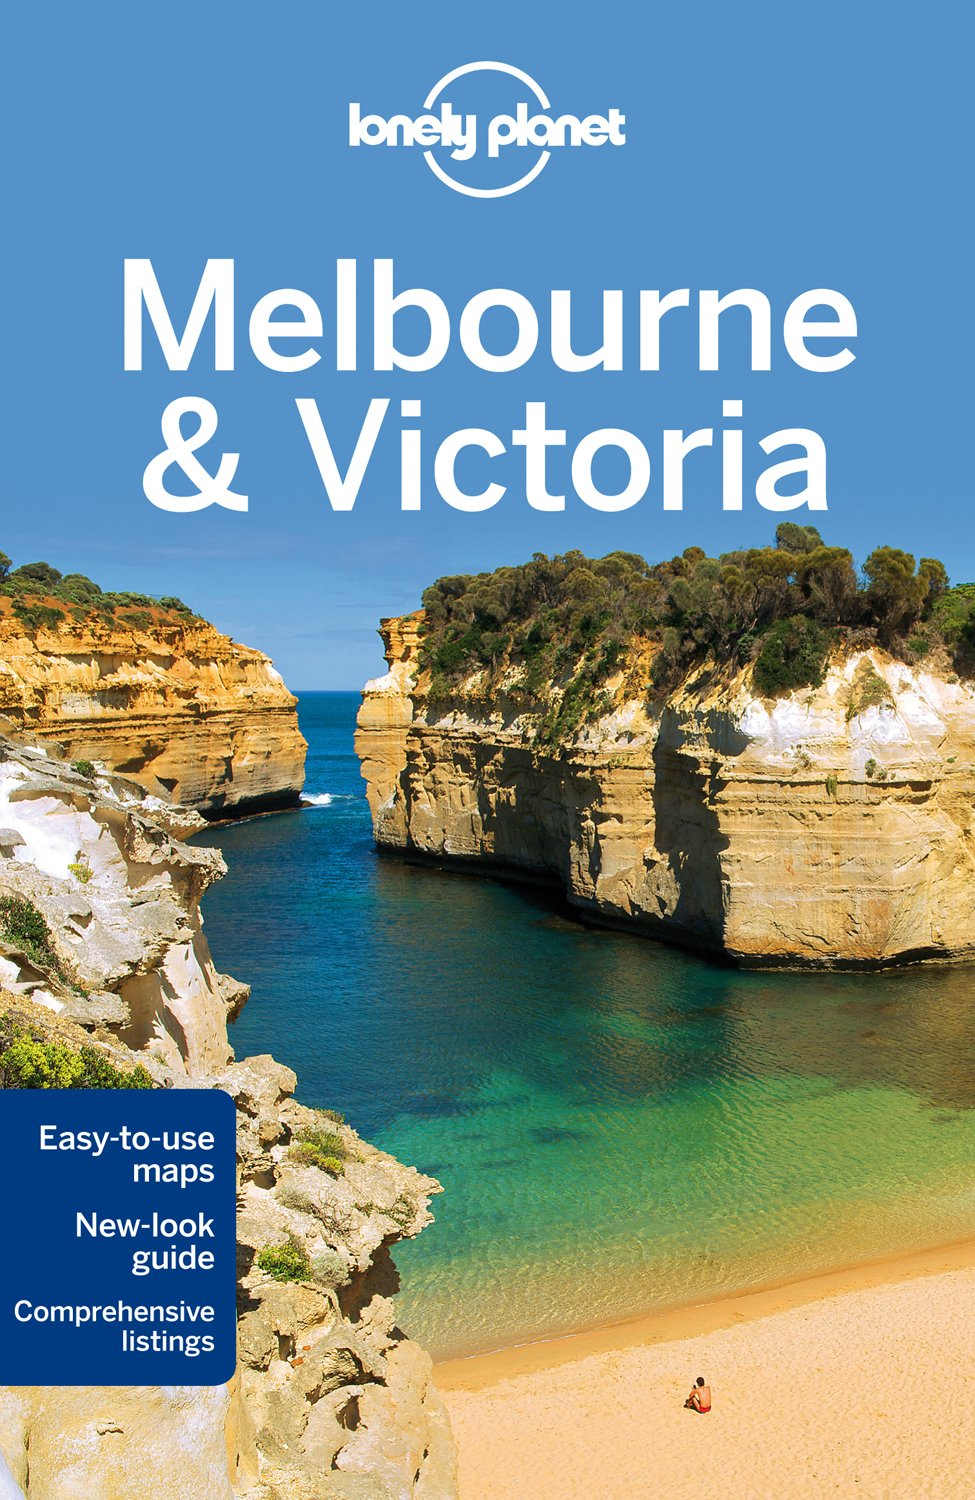 Lonely Planet Melbourne & Victoria, English edition (Country Regional Guides)